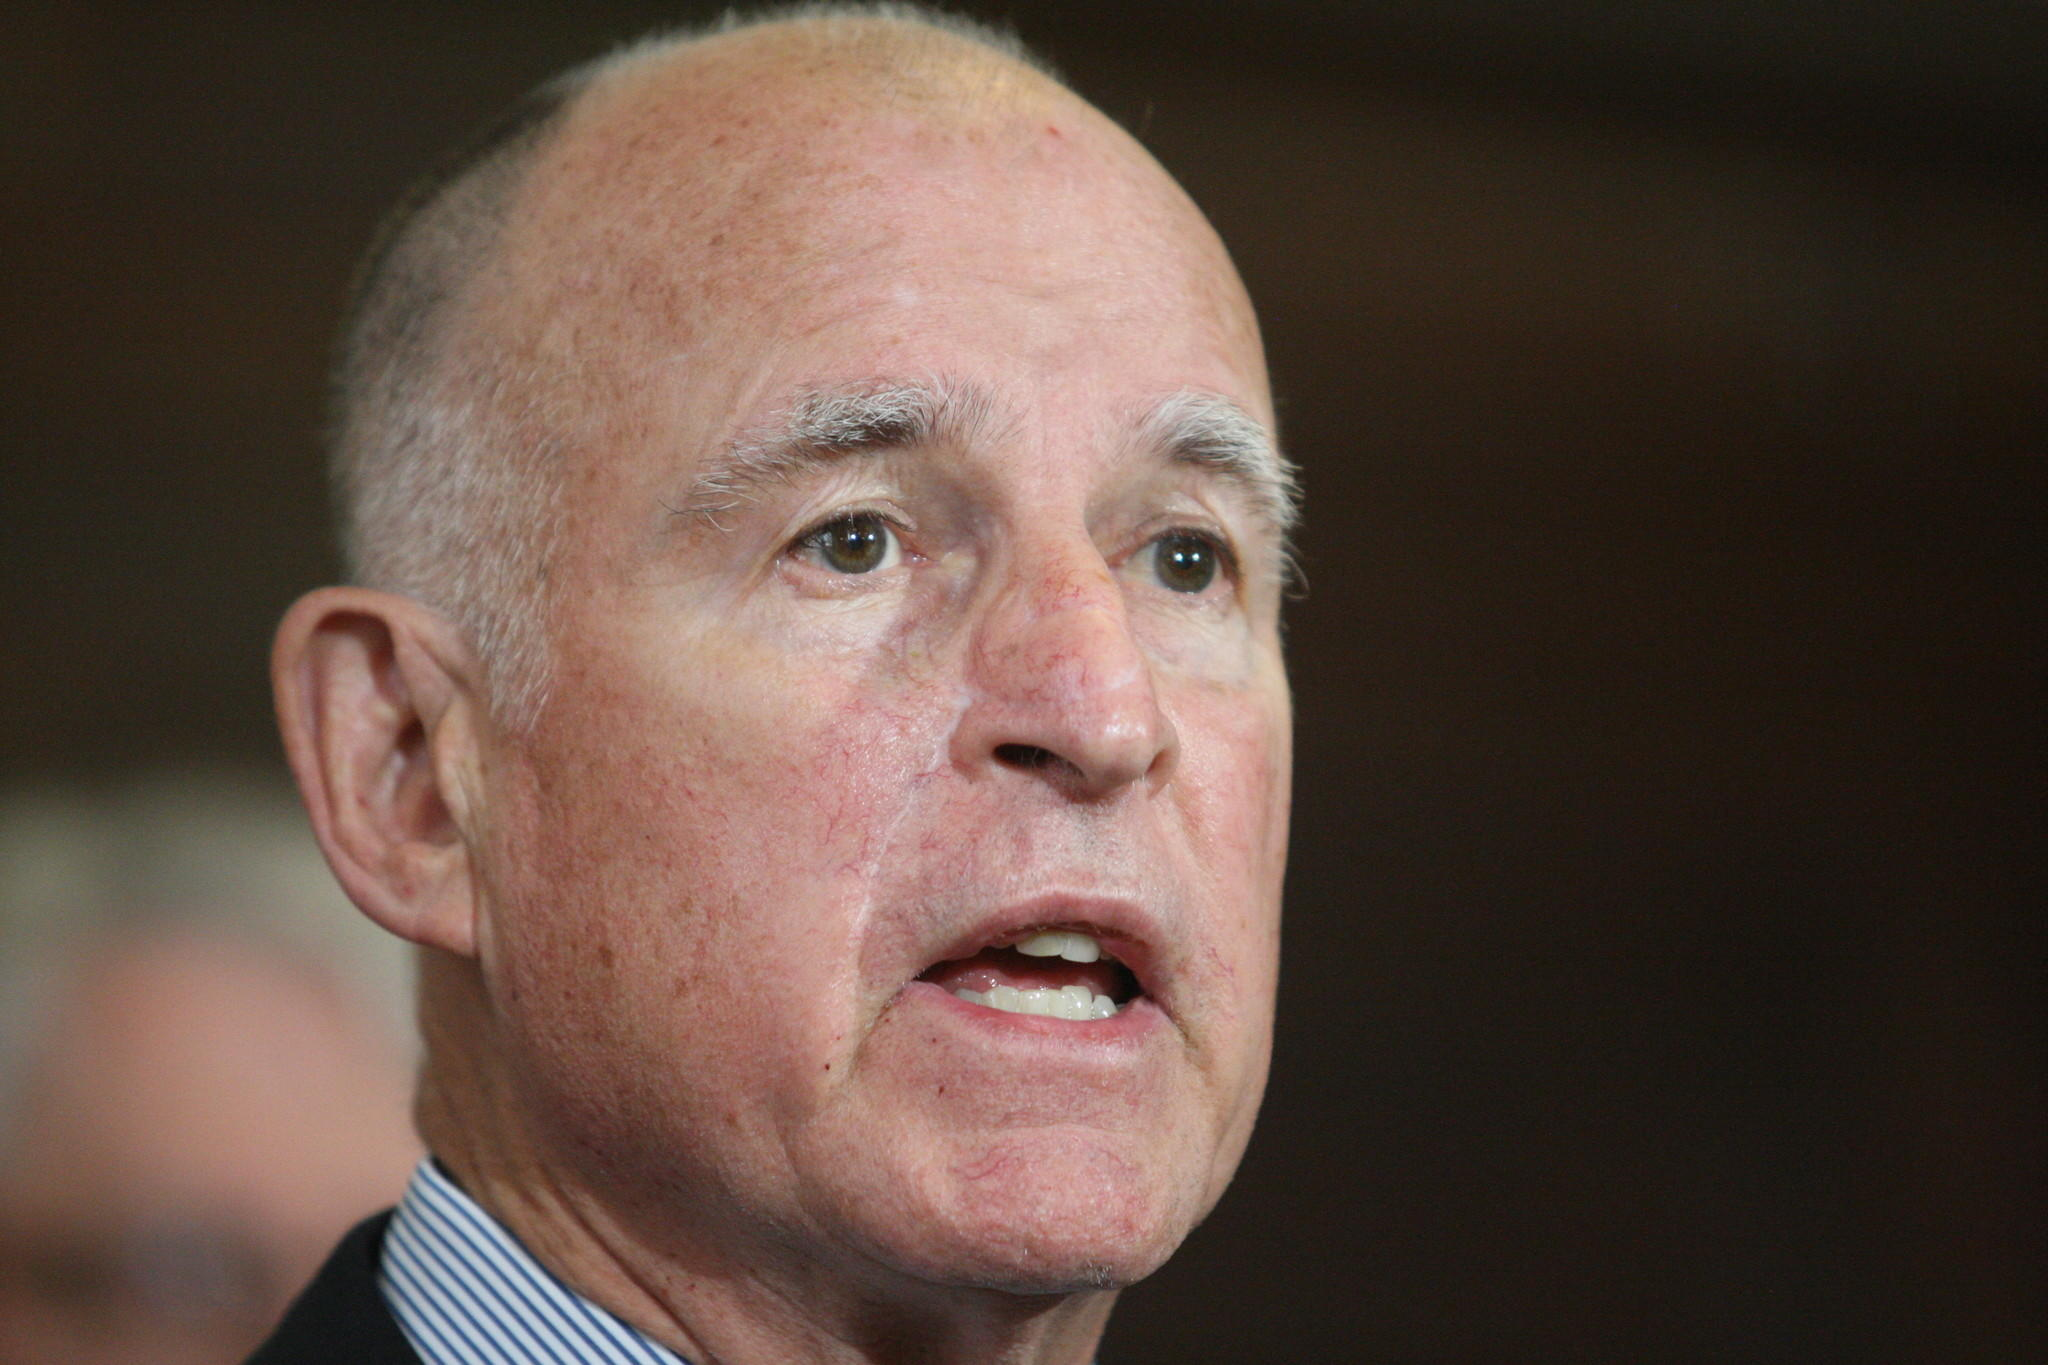 A Field Poll released Wednesday shows California Gov. Jerry Brown has the highest approval rating of his current term. Above, Brown speaks to reporters in February at Los Angeles City Hall.